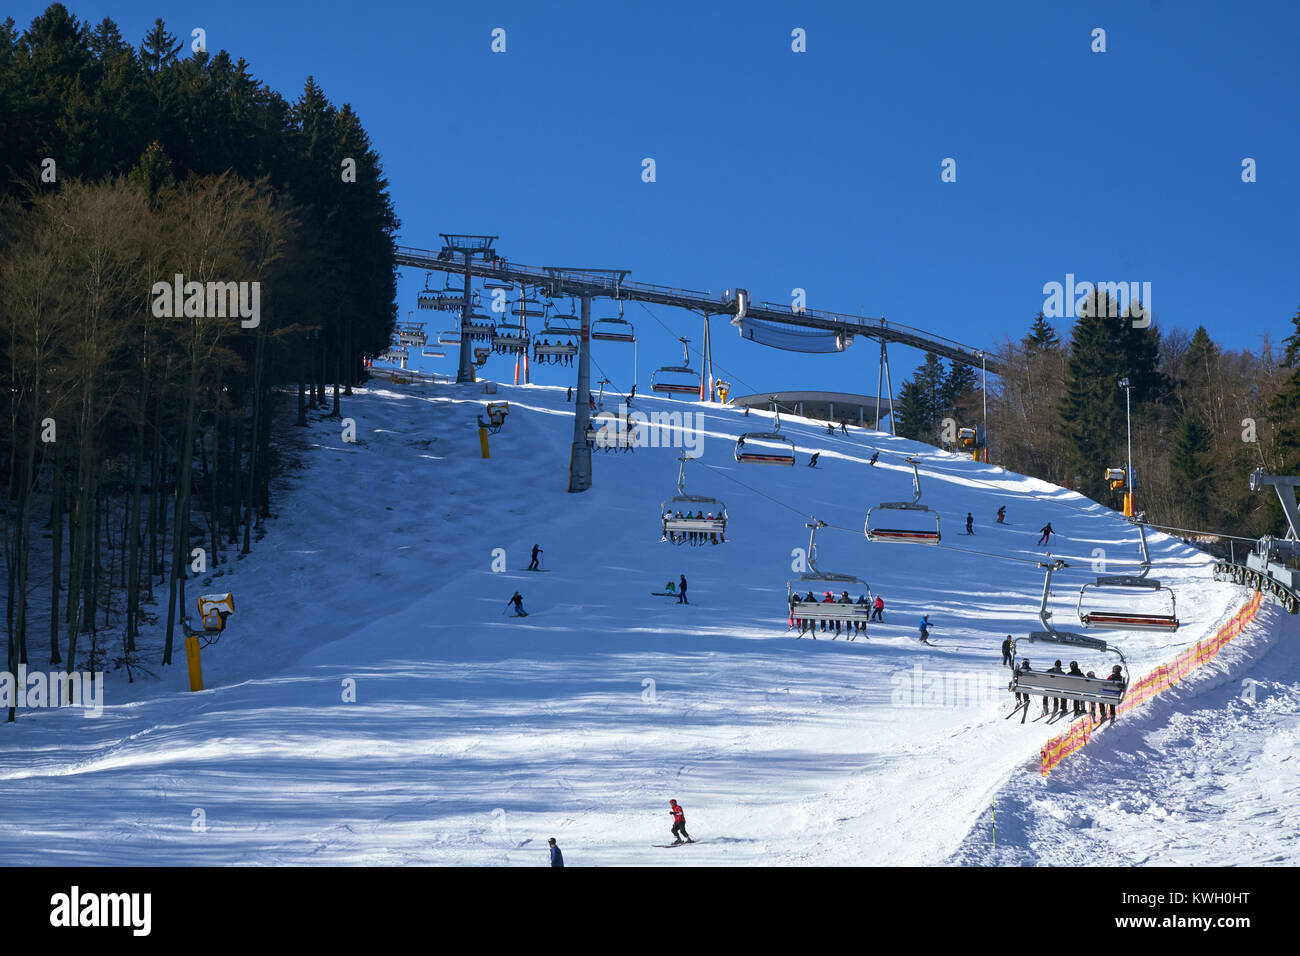 WINTERBERG, GERMANY - FEBRUARY 15, 2017: Six seater chairlift over a piste at Ski Carousel Winterberg - Stock Image